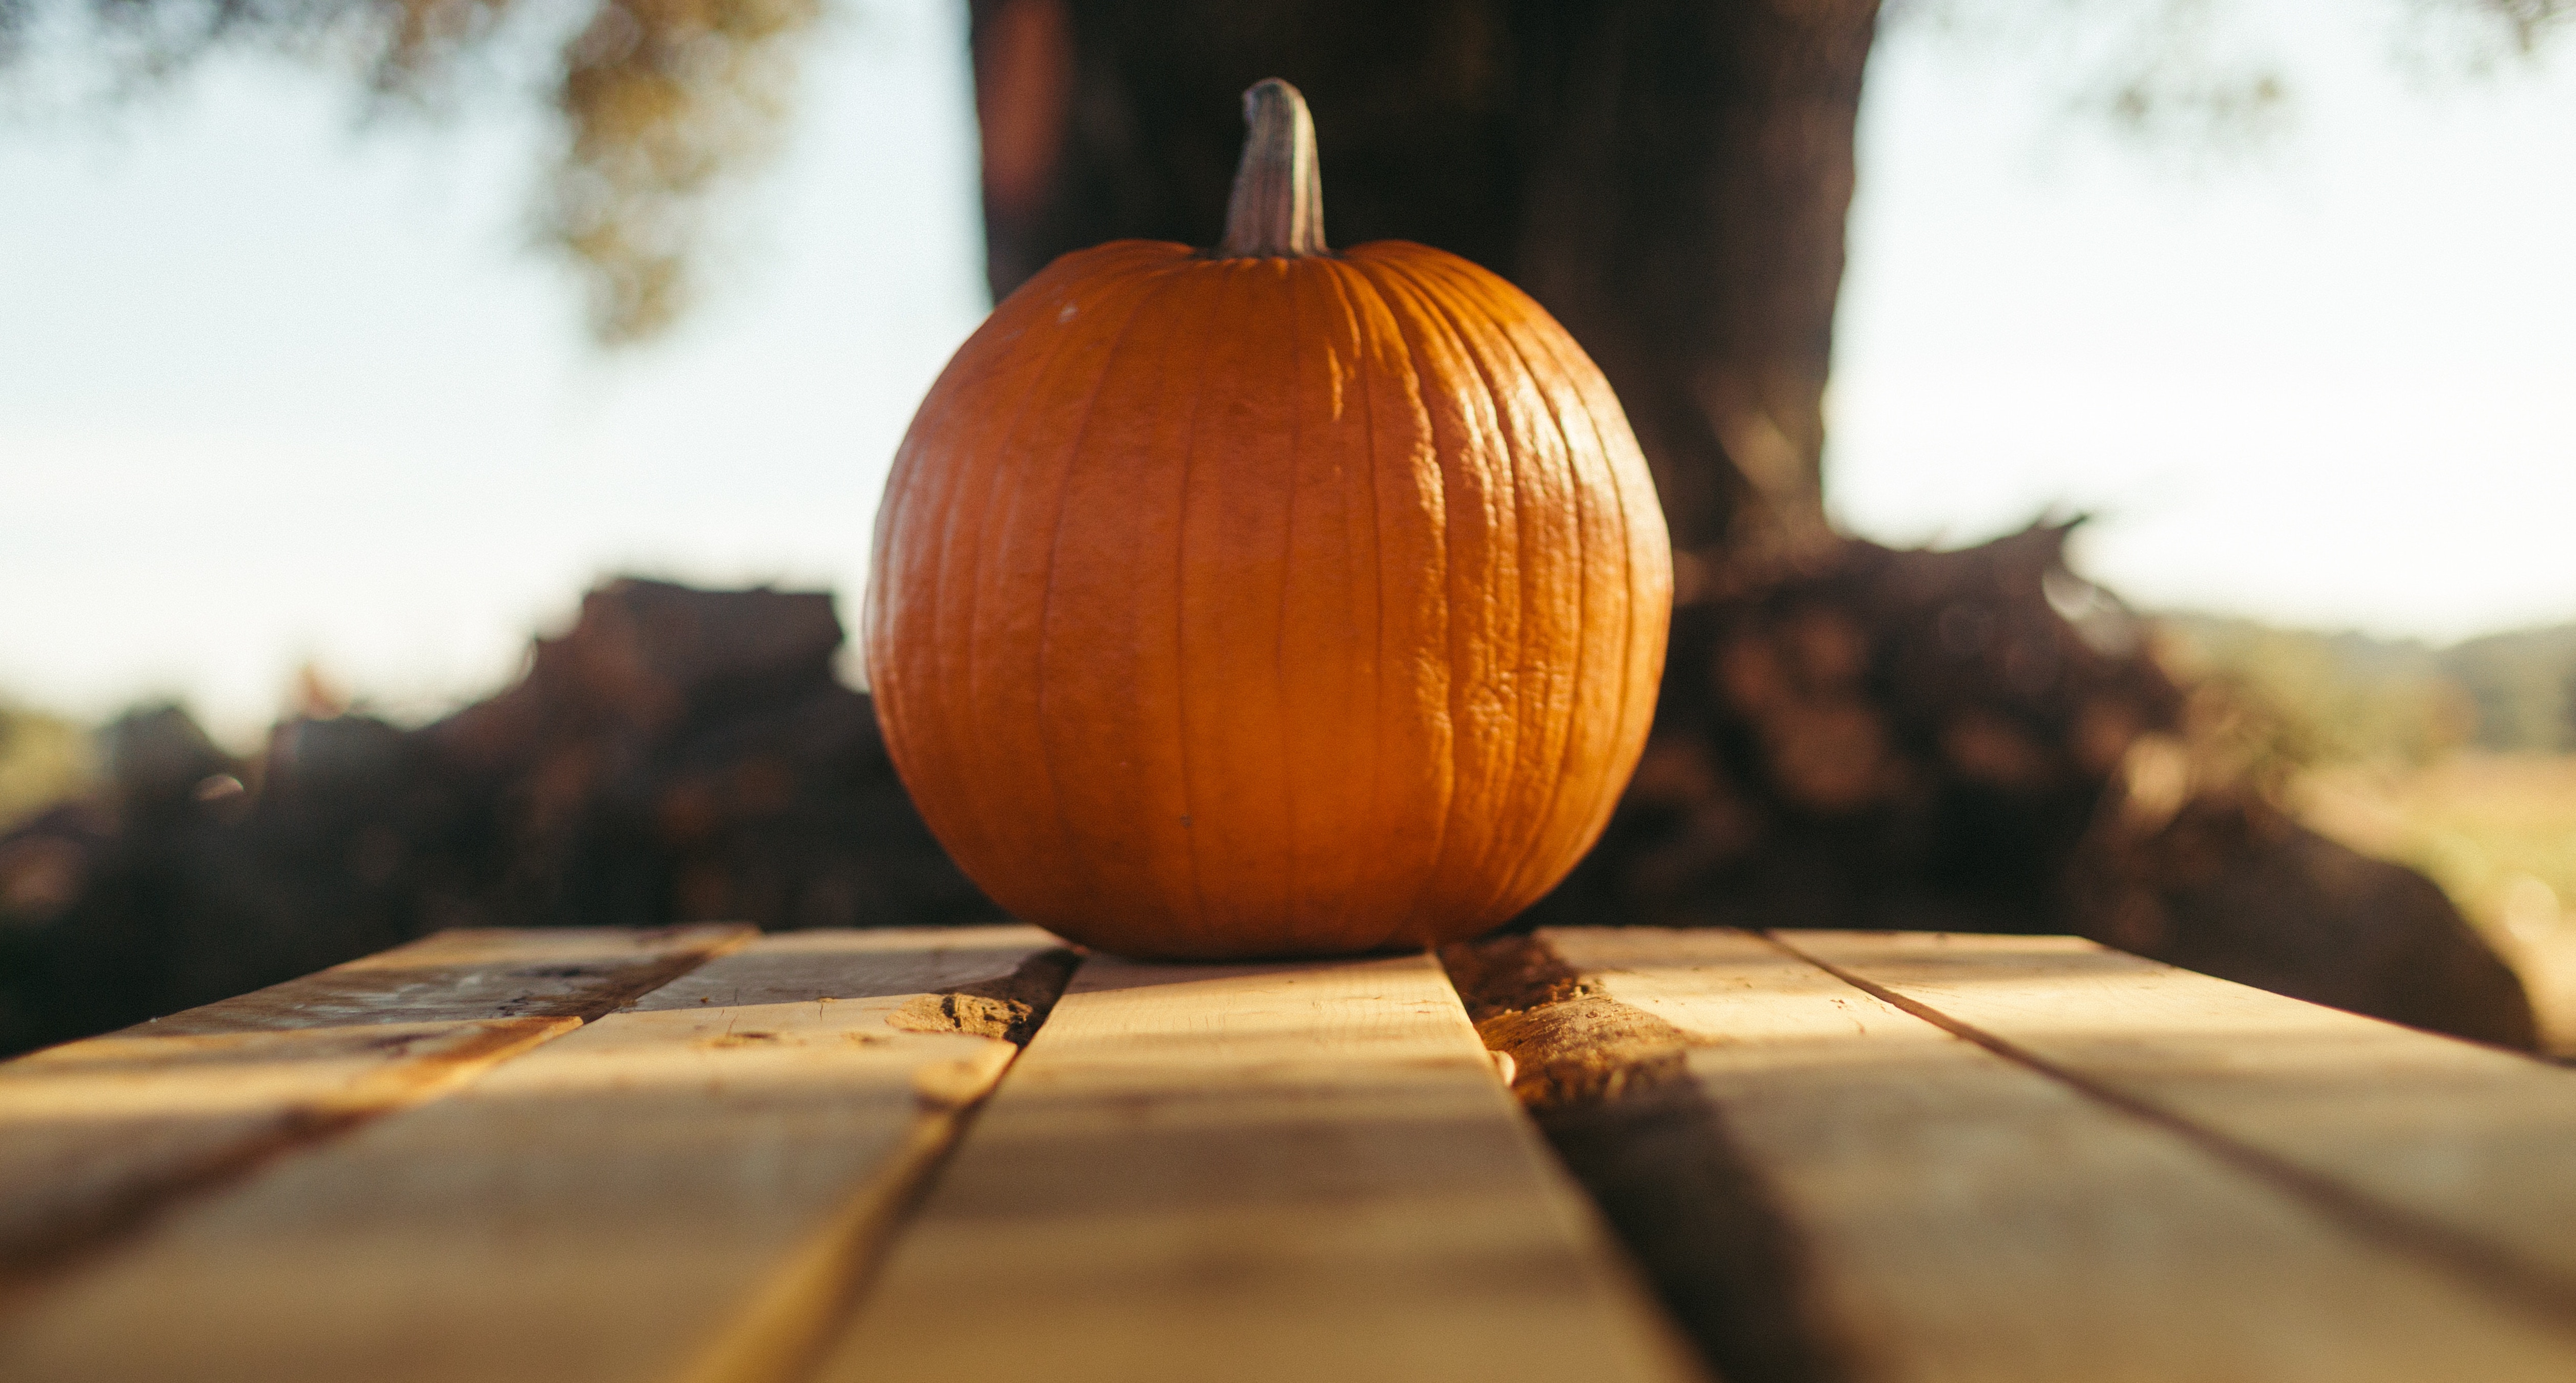 Skin to Seed: How to Eat an Entire Pumpkin